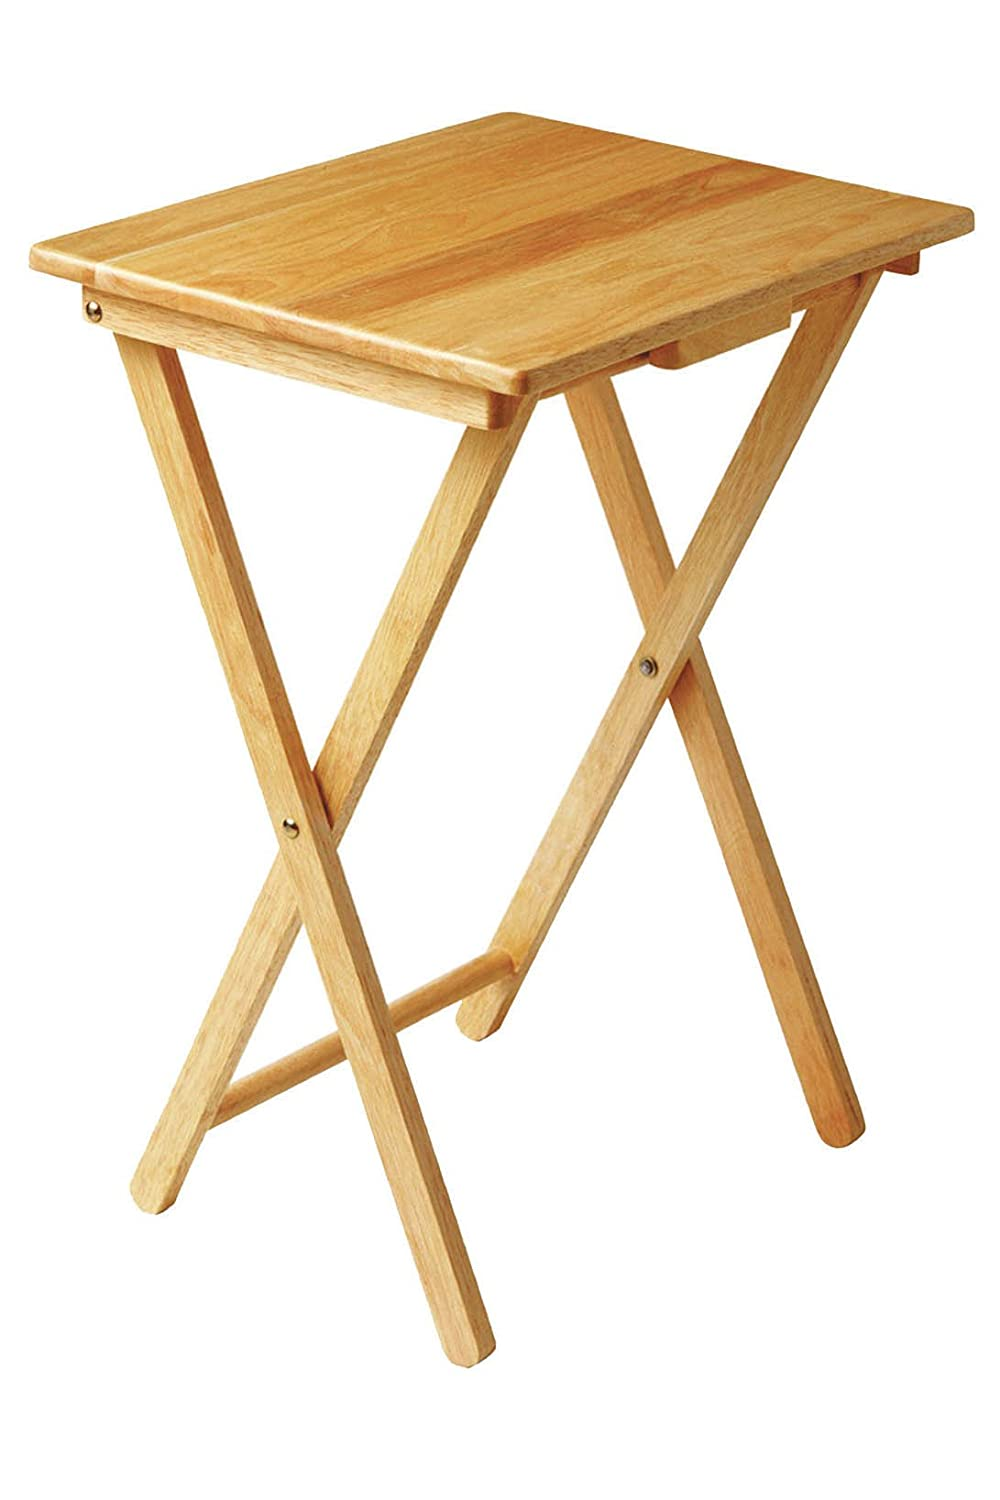 Petite table pliante for Table de television en bois